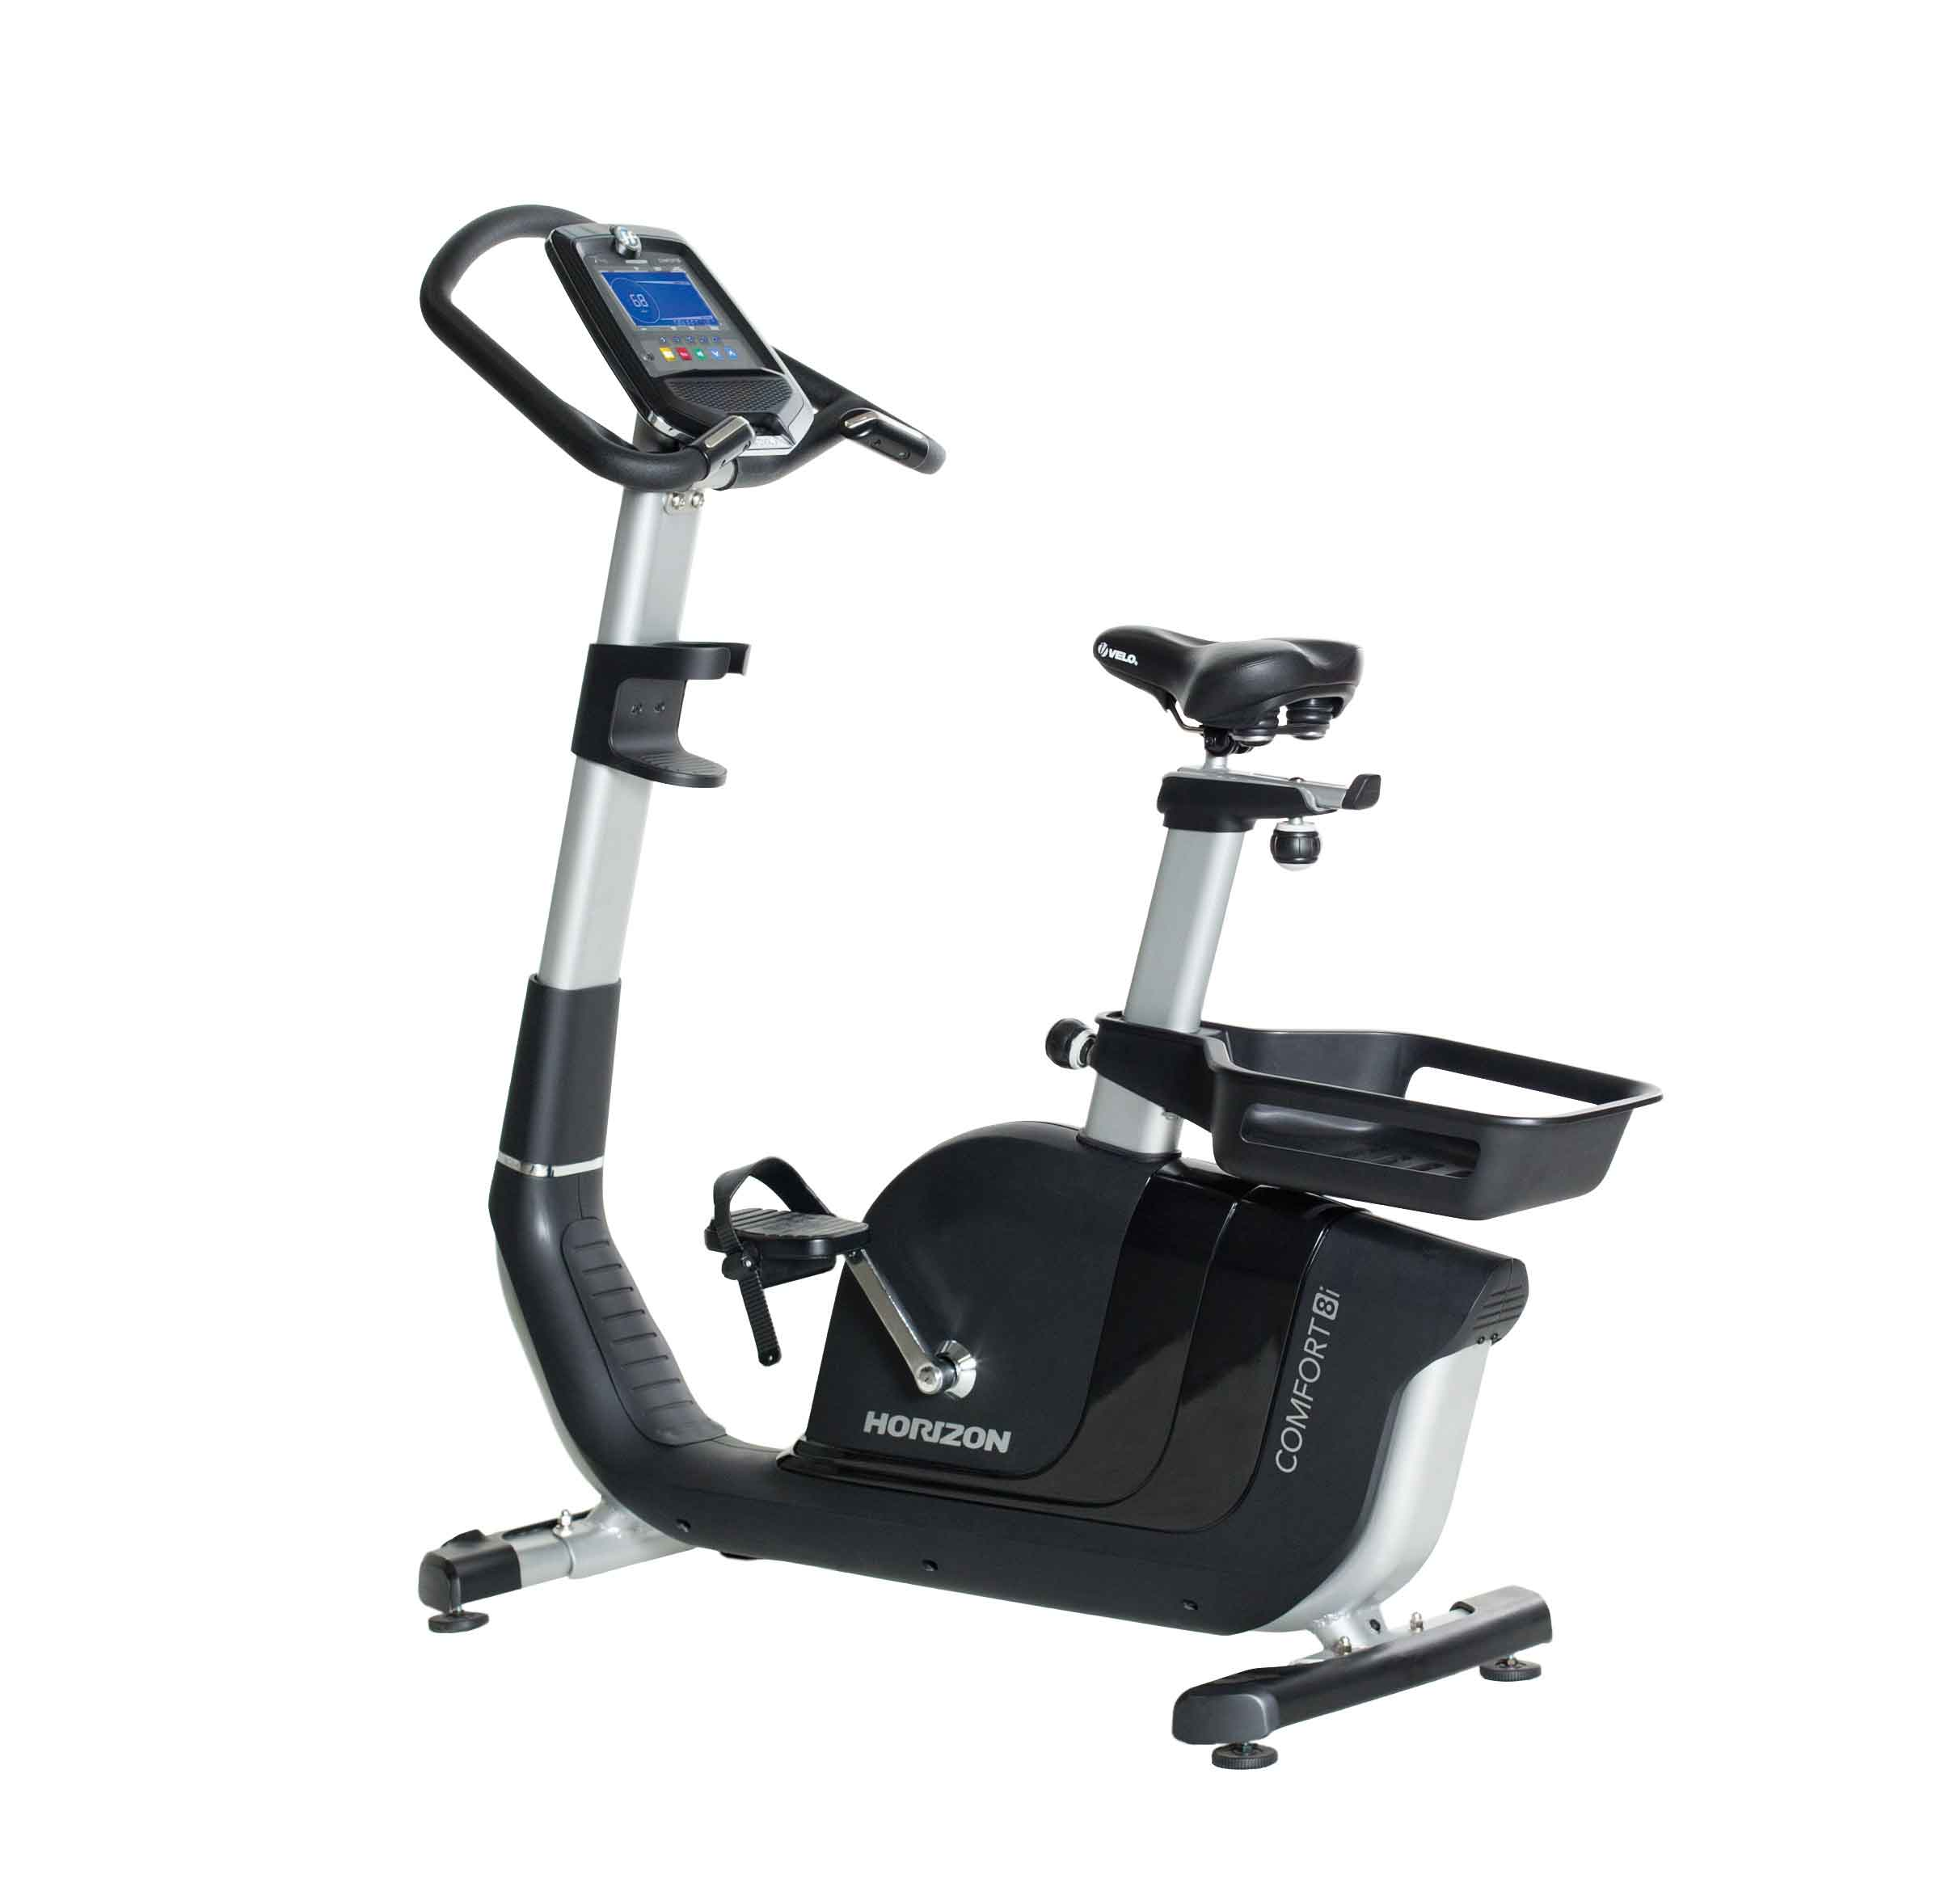 Horizon Upright Bike / Johnson Health Tech. Co., Ltd.